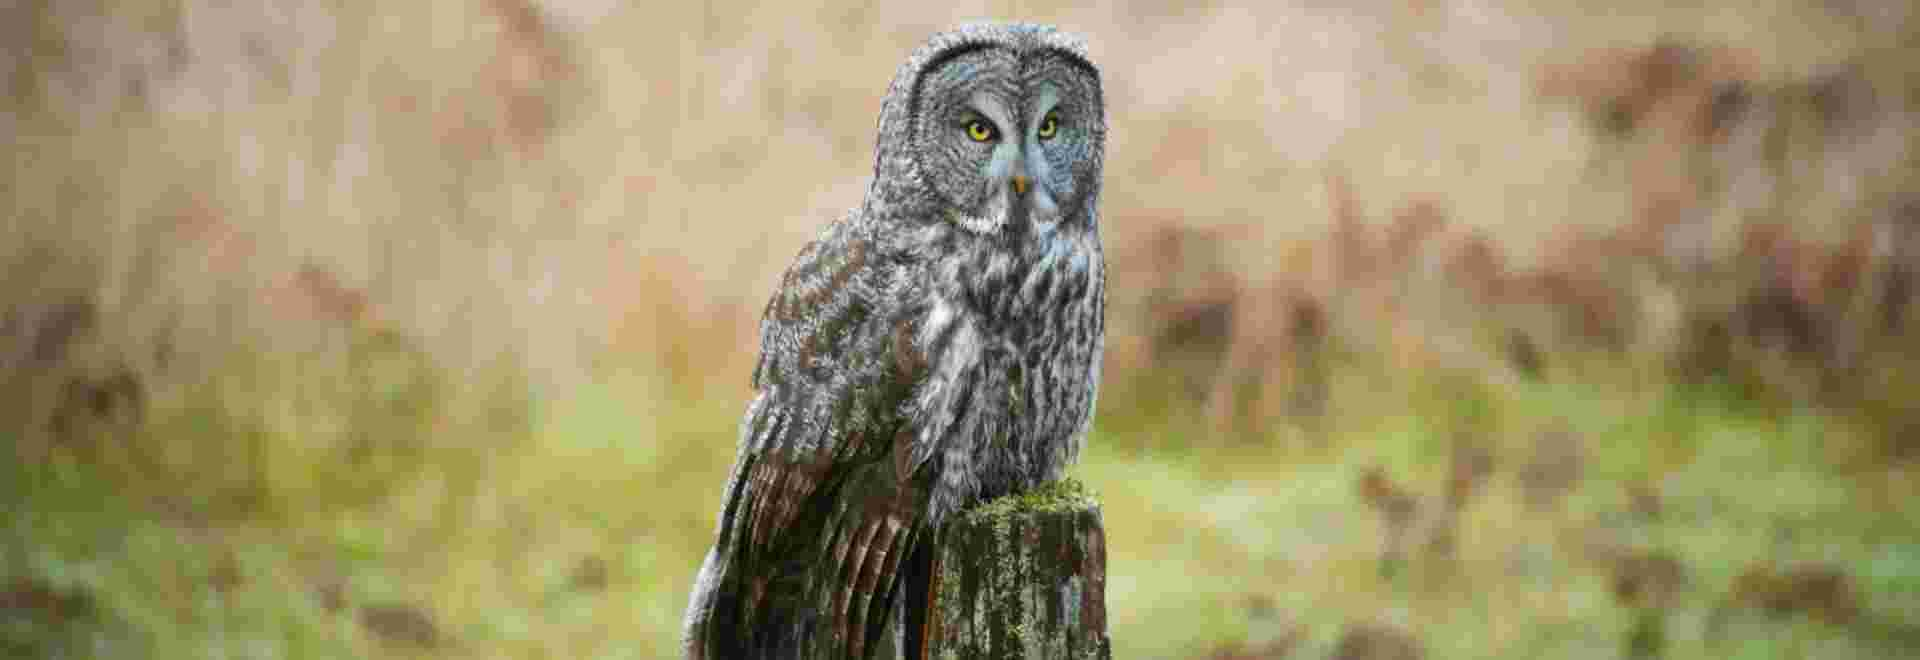 Great Grey Owl visiting Prairie Creek Redwoods